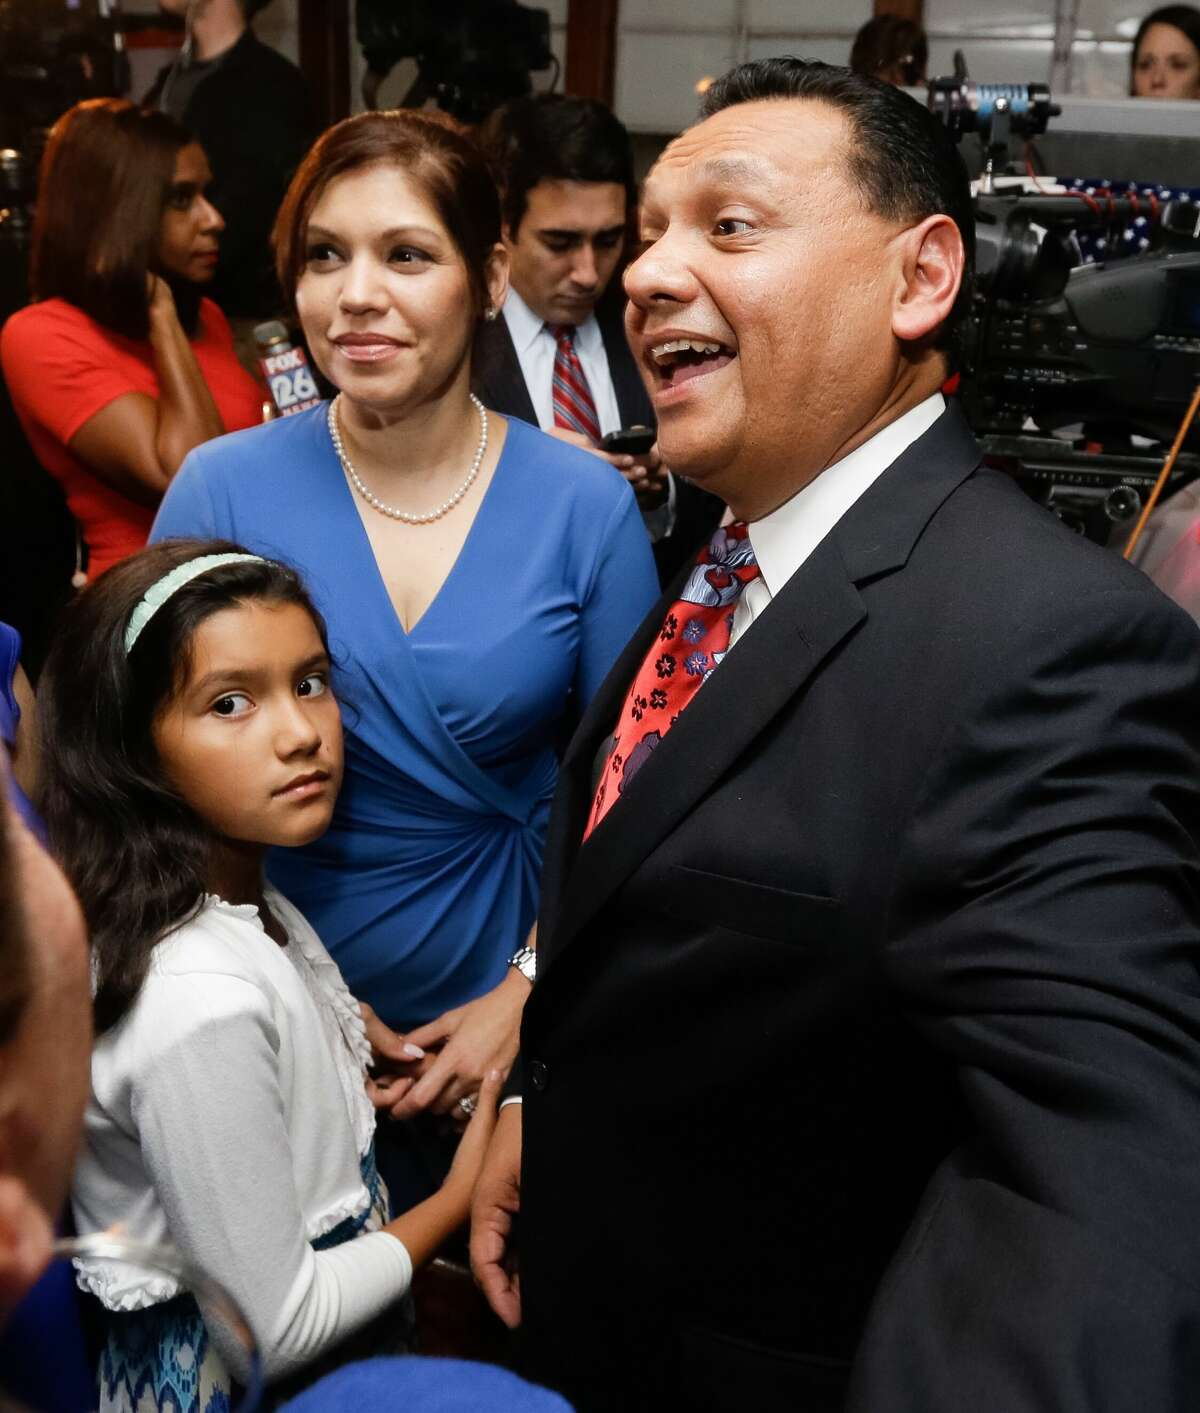 Candidate for Harris County Sheriff Ed Gonzalez, His wife Melissa, and their daughter Erika,7, are greeted by supporters during election watch party at Fitzgerald's, 2706 White Oak Dr., Tuesday, Nov. 8, 2016 in Houston. ( Melissa Phillip / Houston Chronicle )